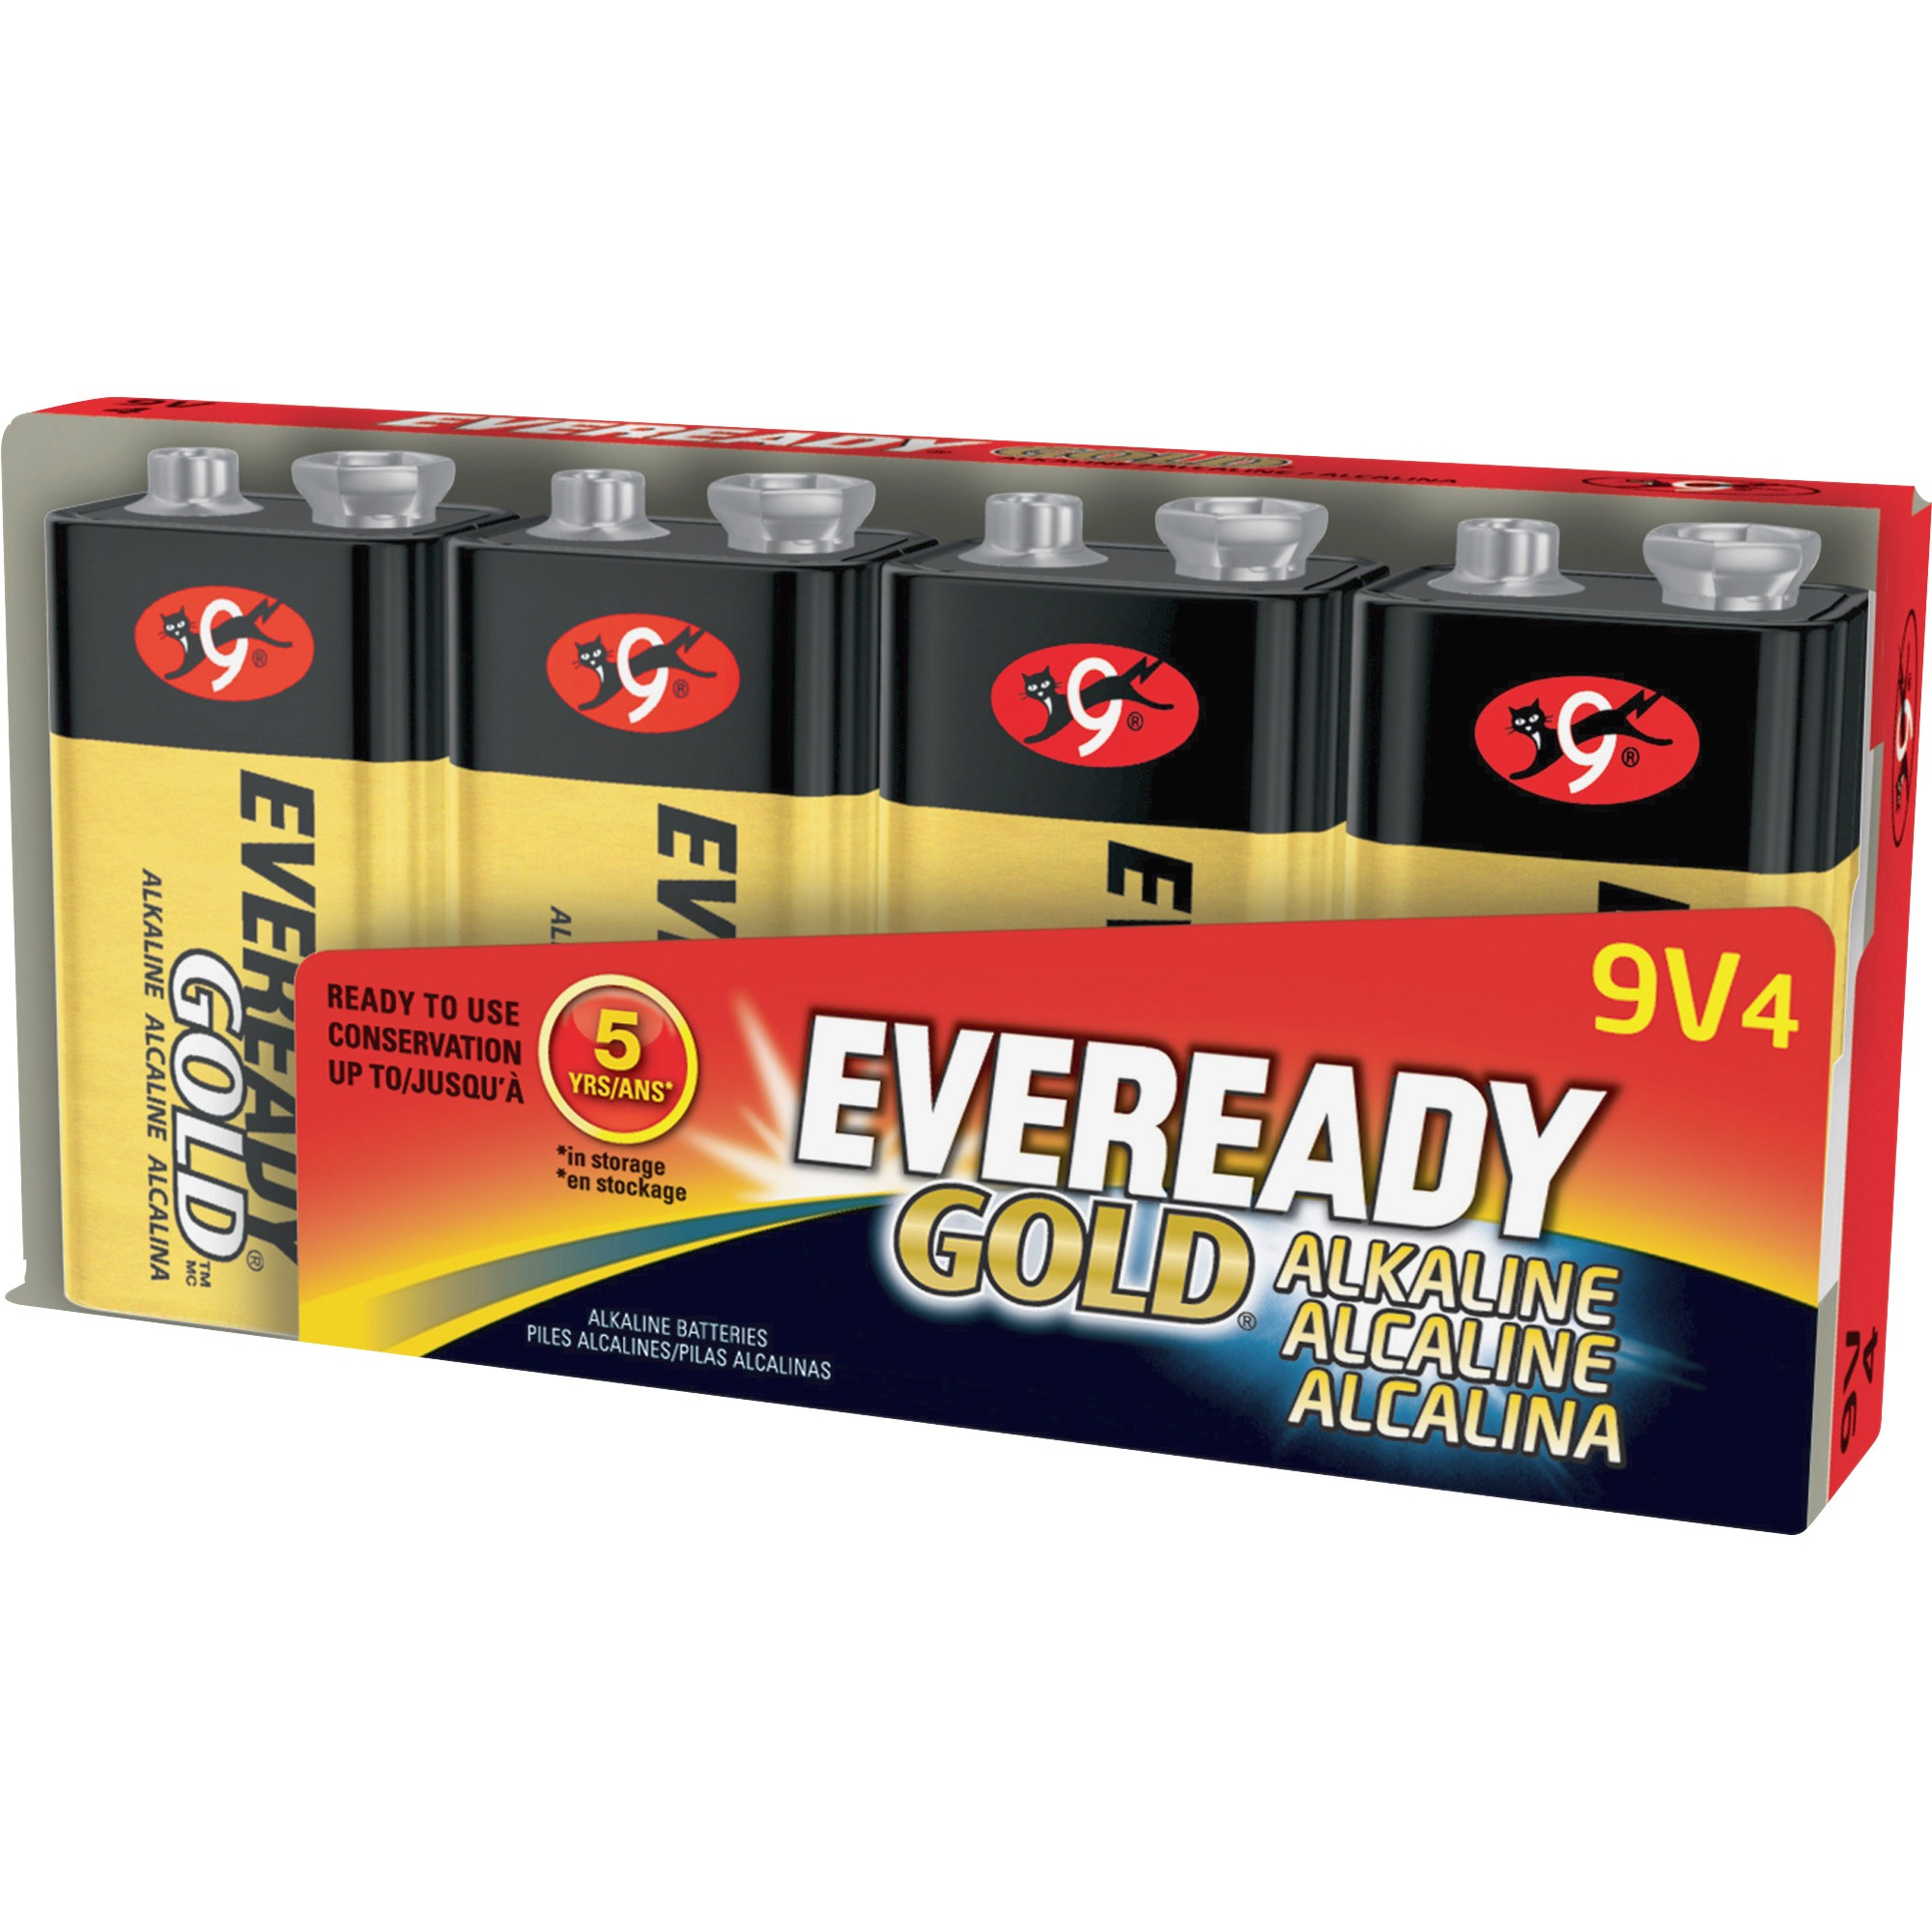 EVEREADY GOLD 9V Batteries, 4 Count